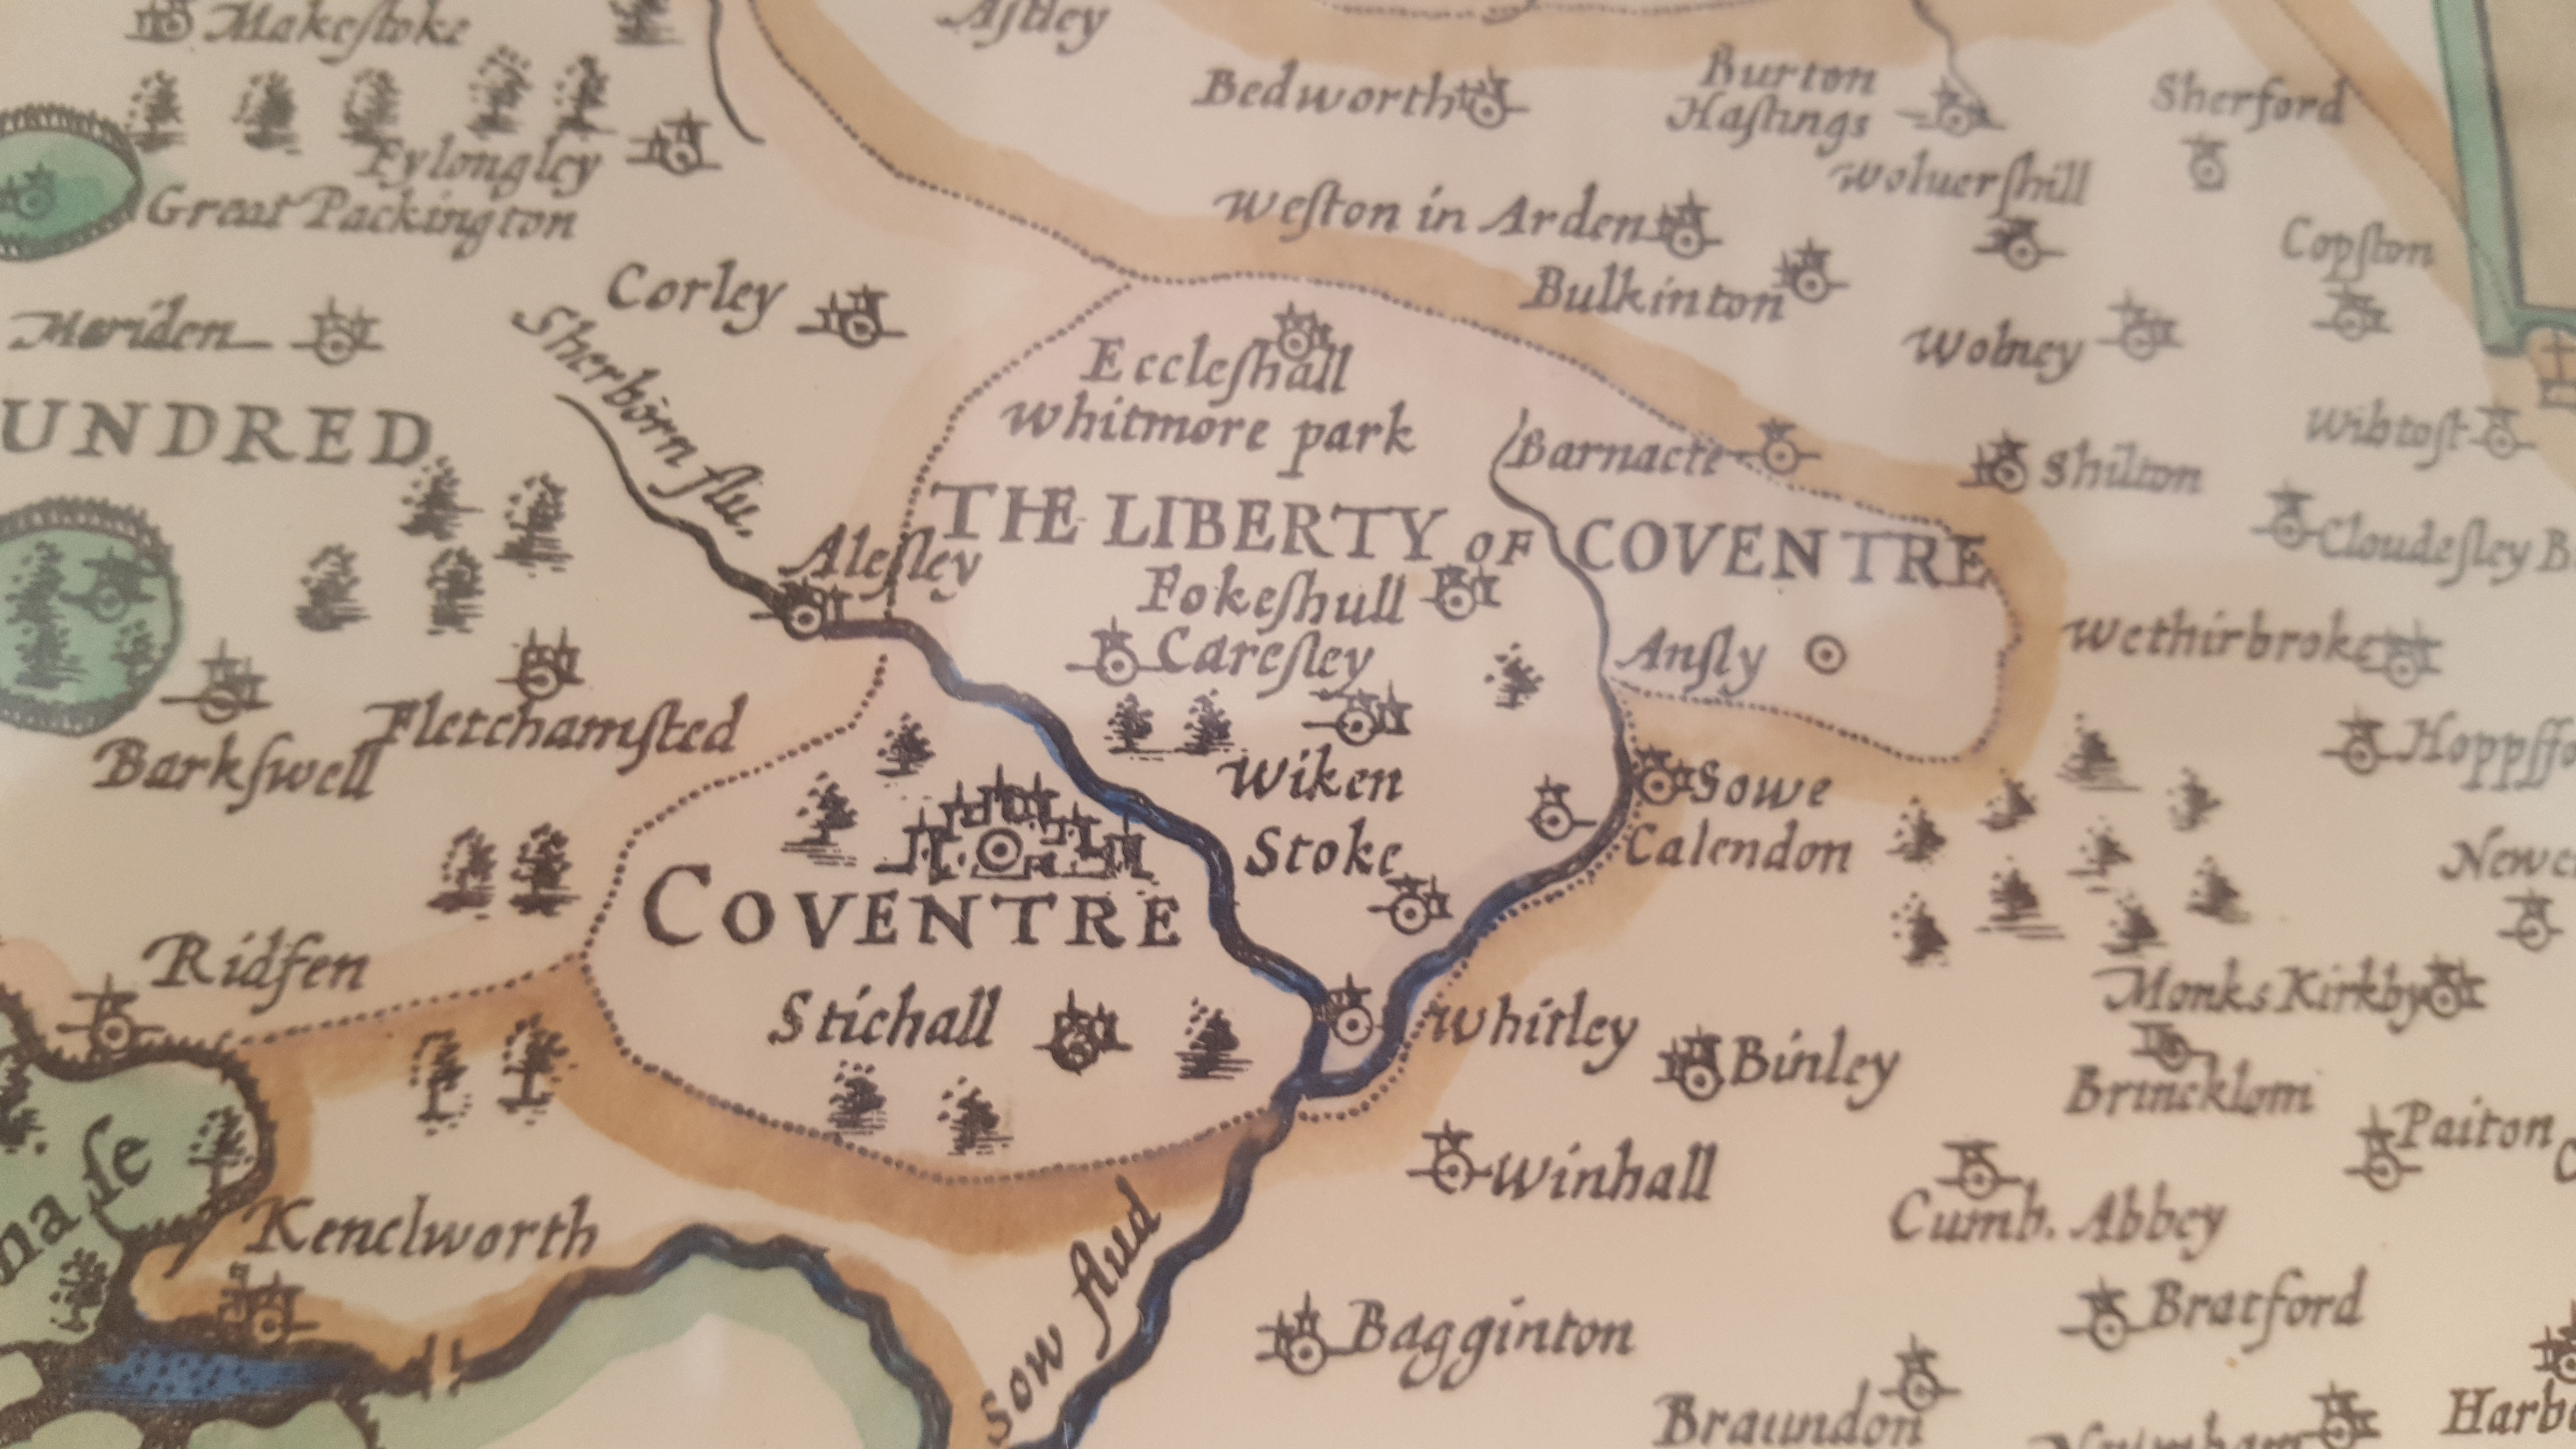 Back in the day, the Liberty of Coventry.